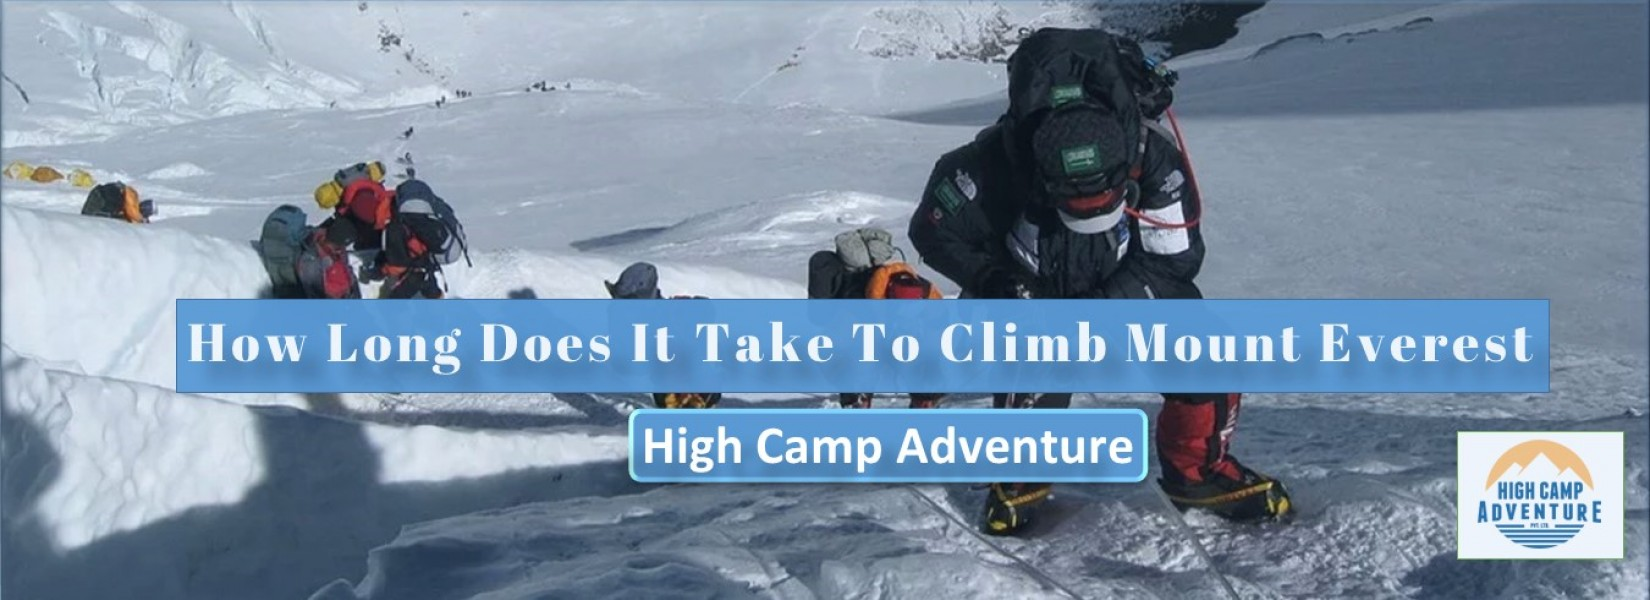 How Long Does It Take To Climb Mount Everest